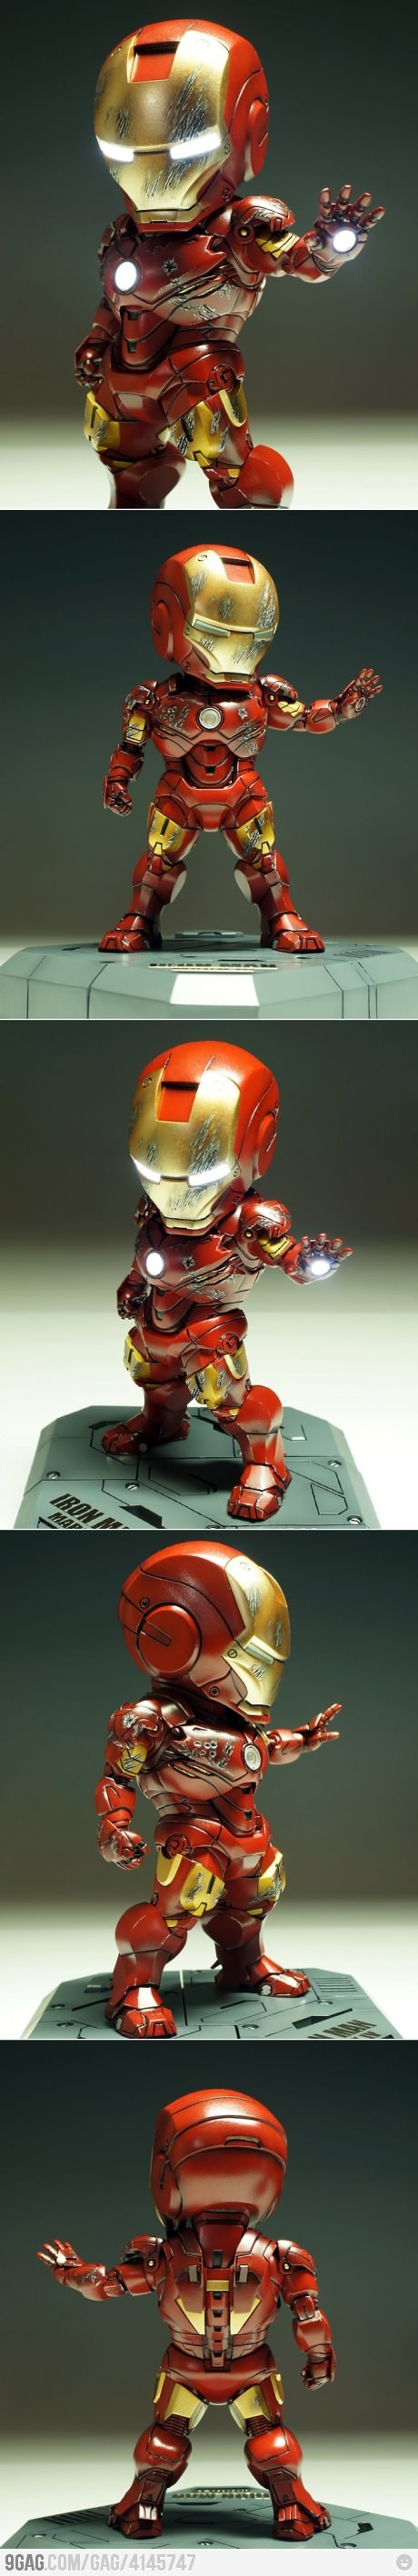 Awesome chibi style Iron Man Figure!  Now if only there's a whole set of The Avengers figures~